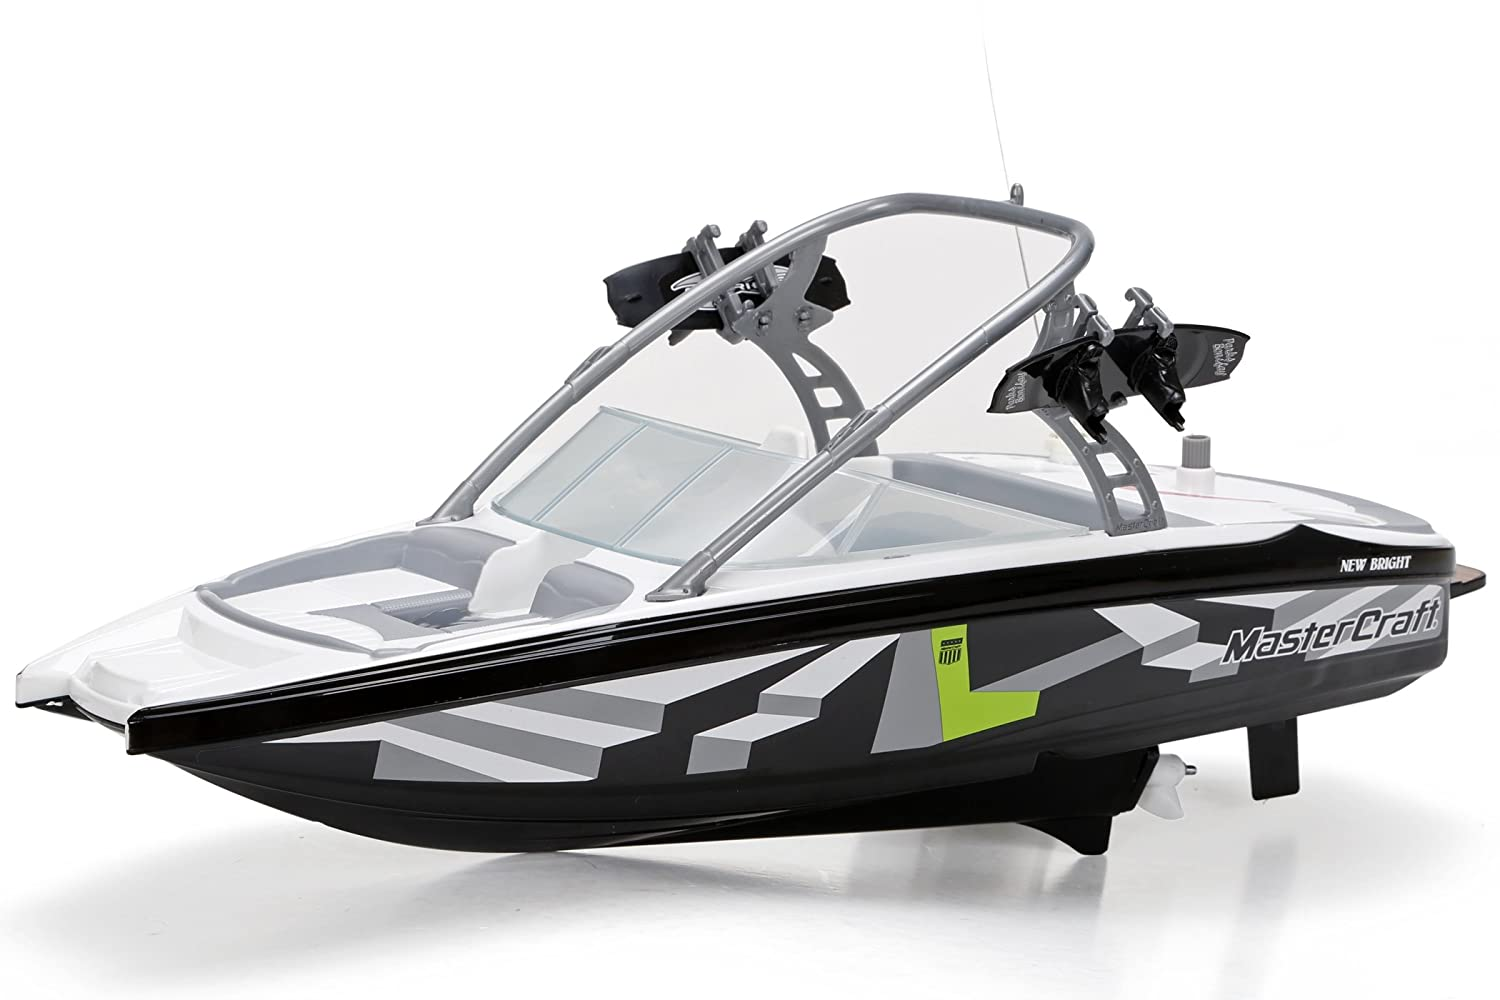 "New Bright 17"" Radio Control Mastercraft Boat (Frequencies may vary)"